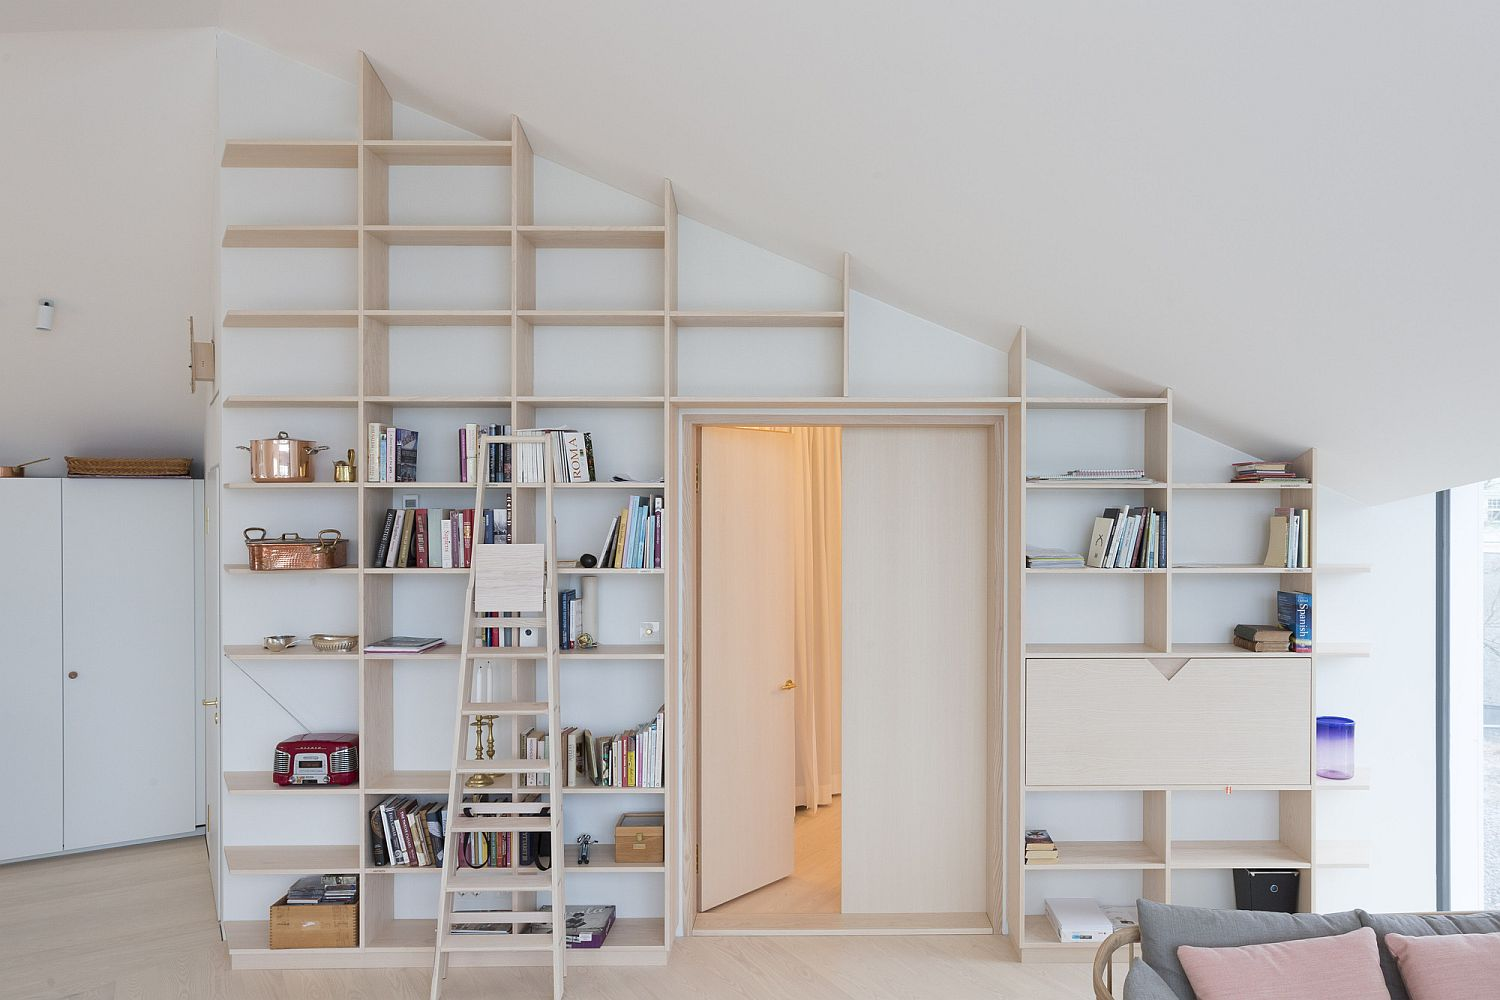 Space-savvy wall shelves that reach all the way up to the ceiling